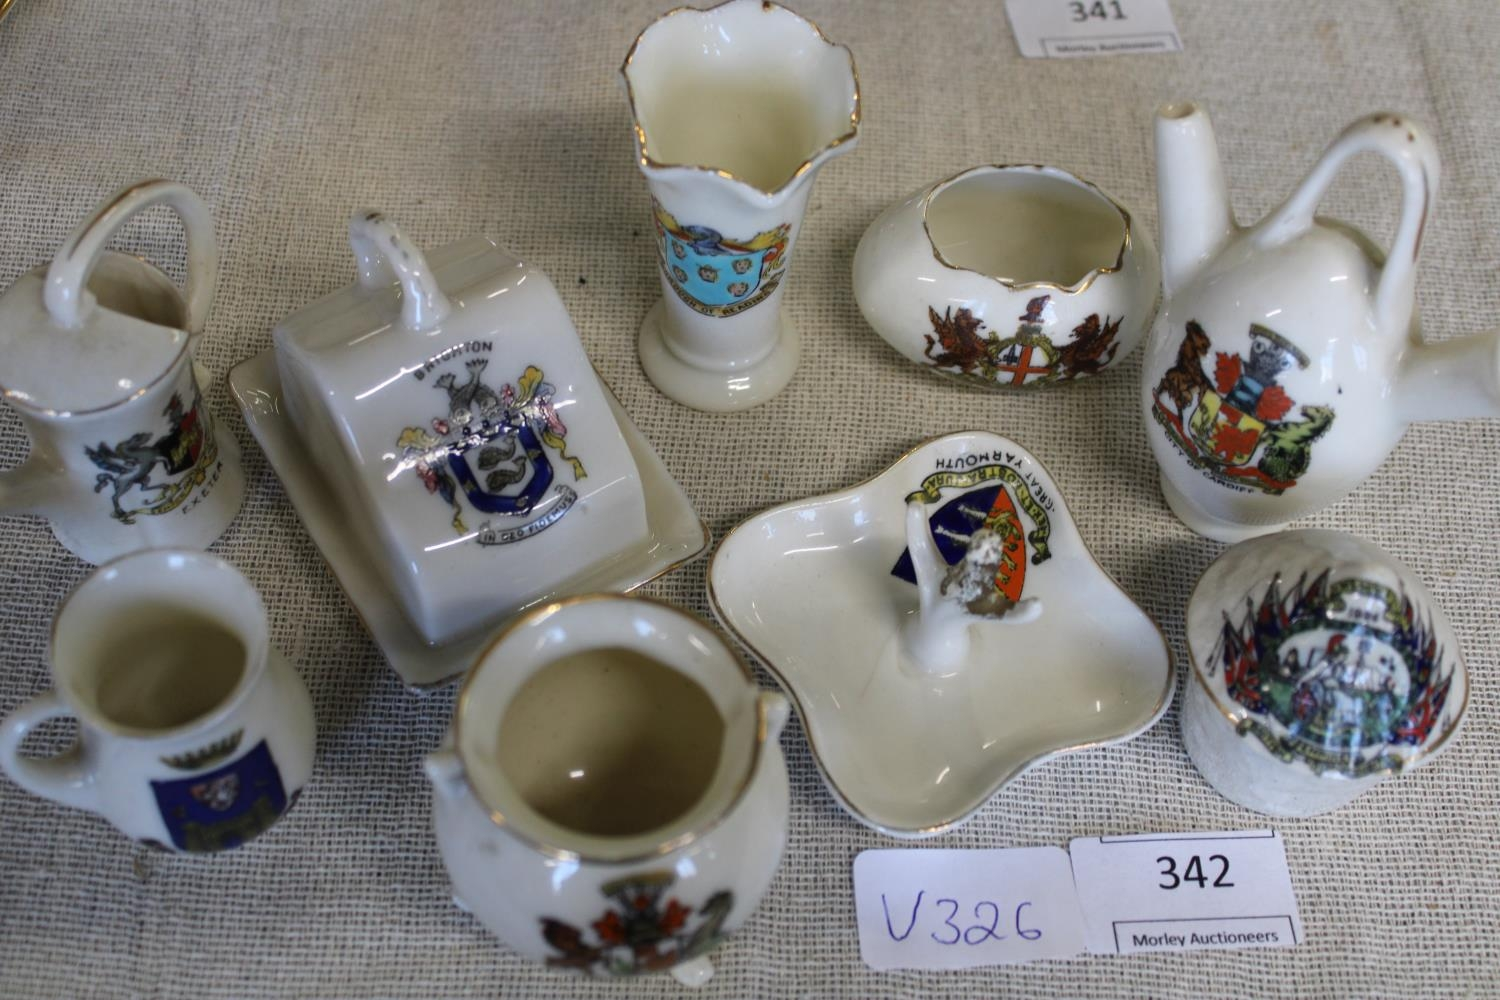 Eight pieces of collectable commemorative/crested ware ware